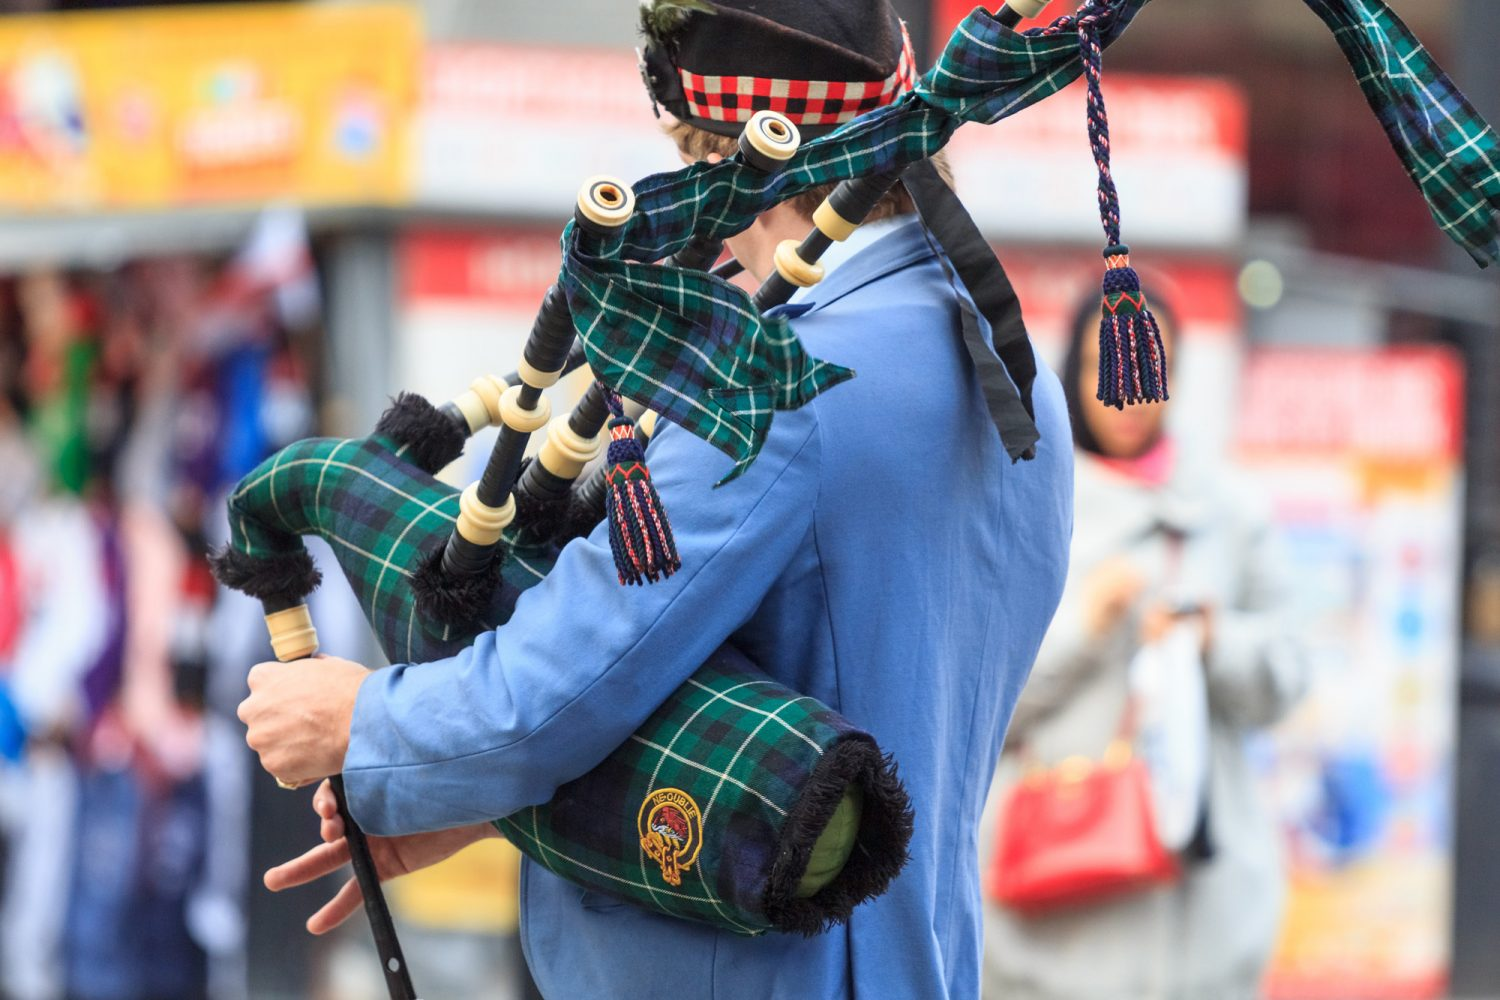 Scottish piper upper part of the body